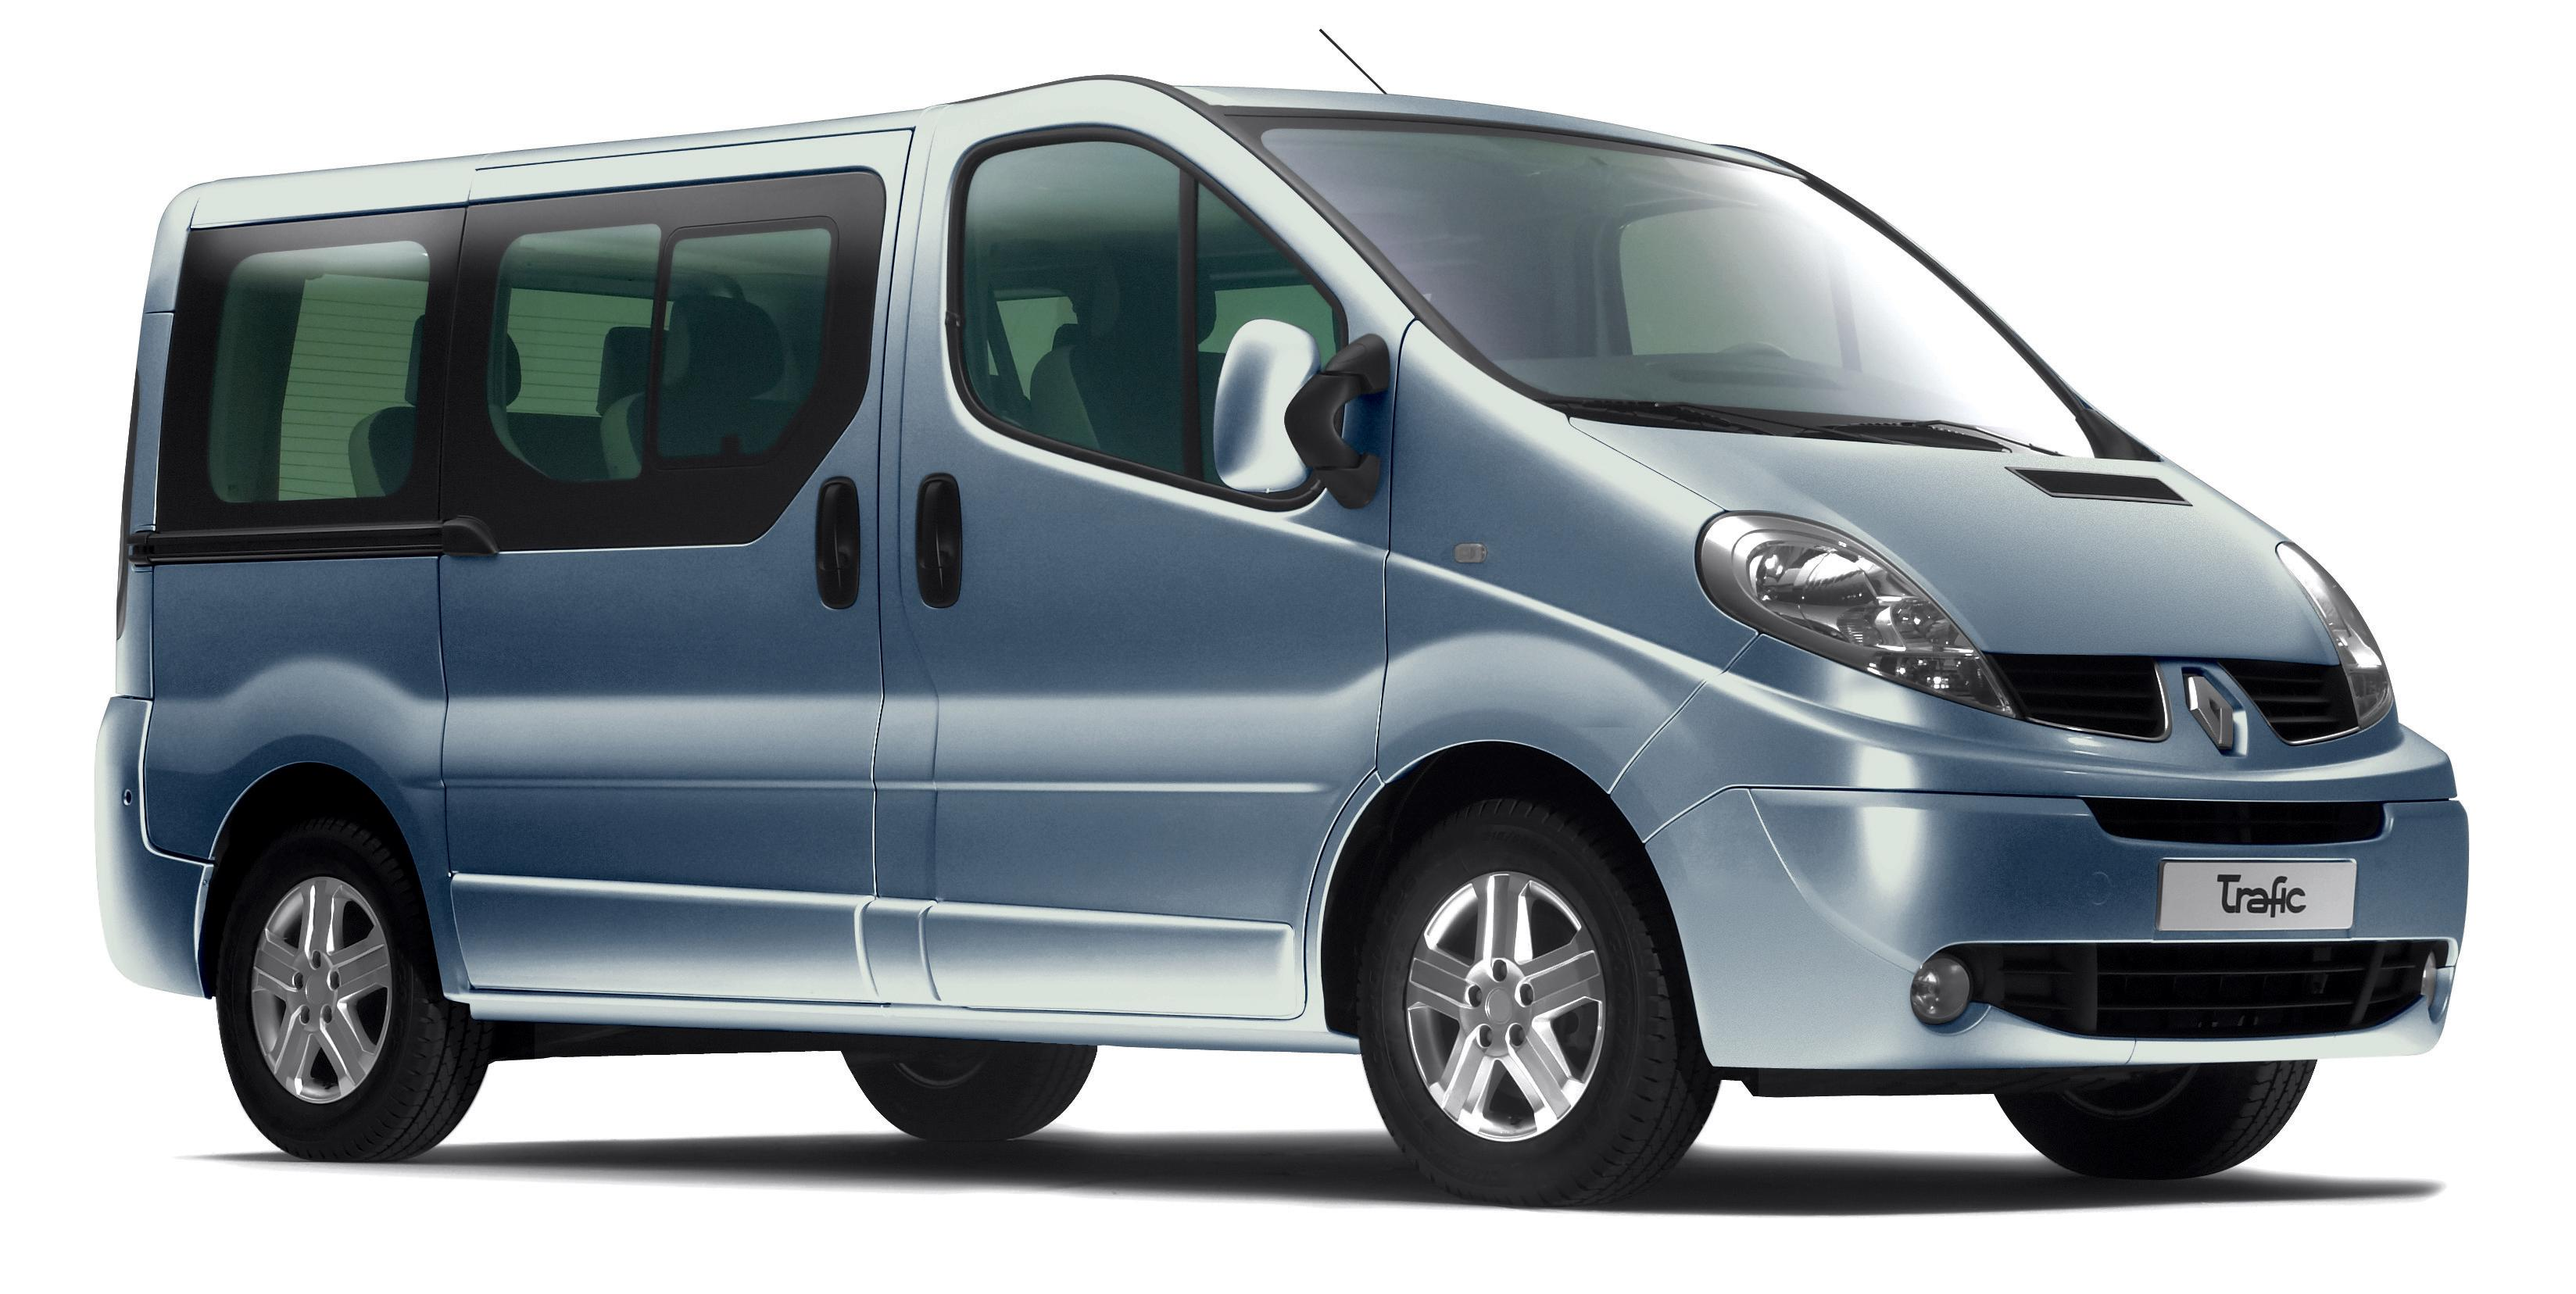 renault trafic passenger technical details history. Black Bedroom Furniture Sets. Home Design Ideas